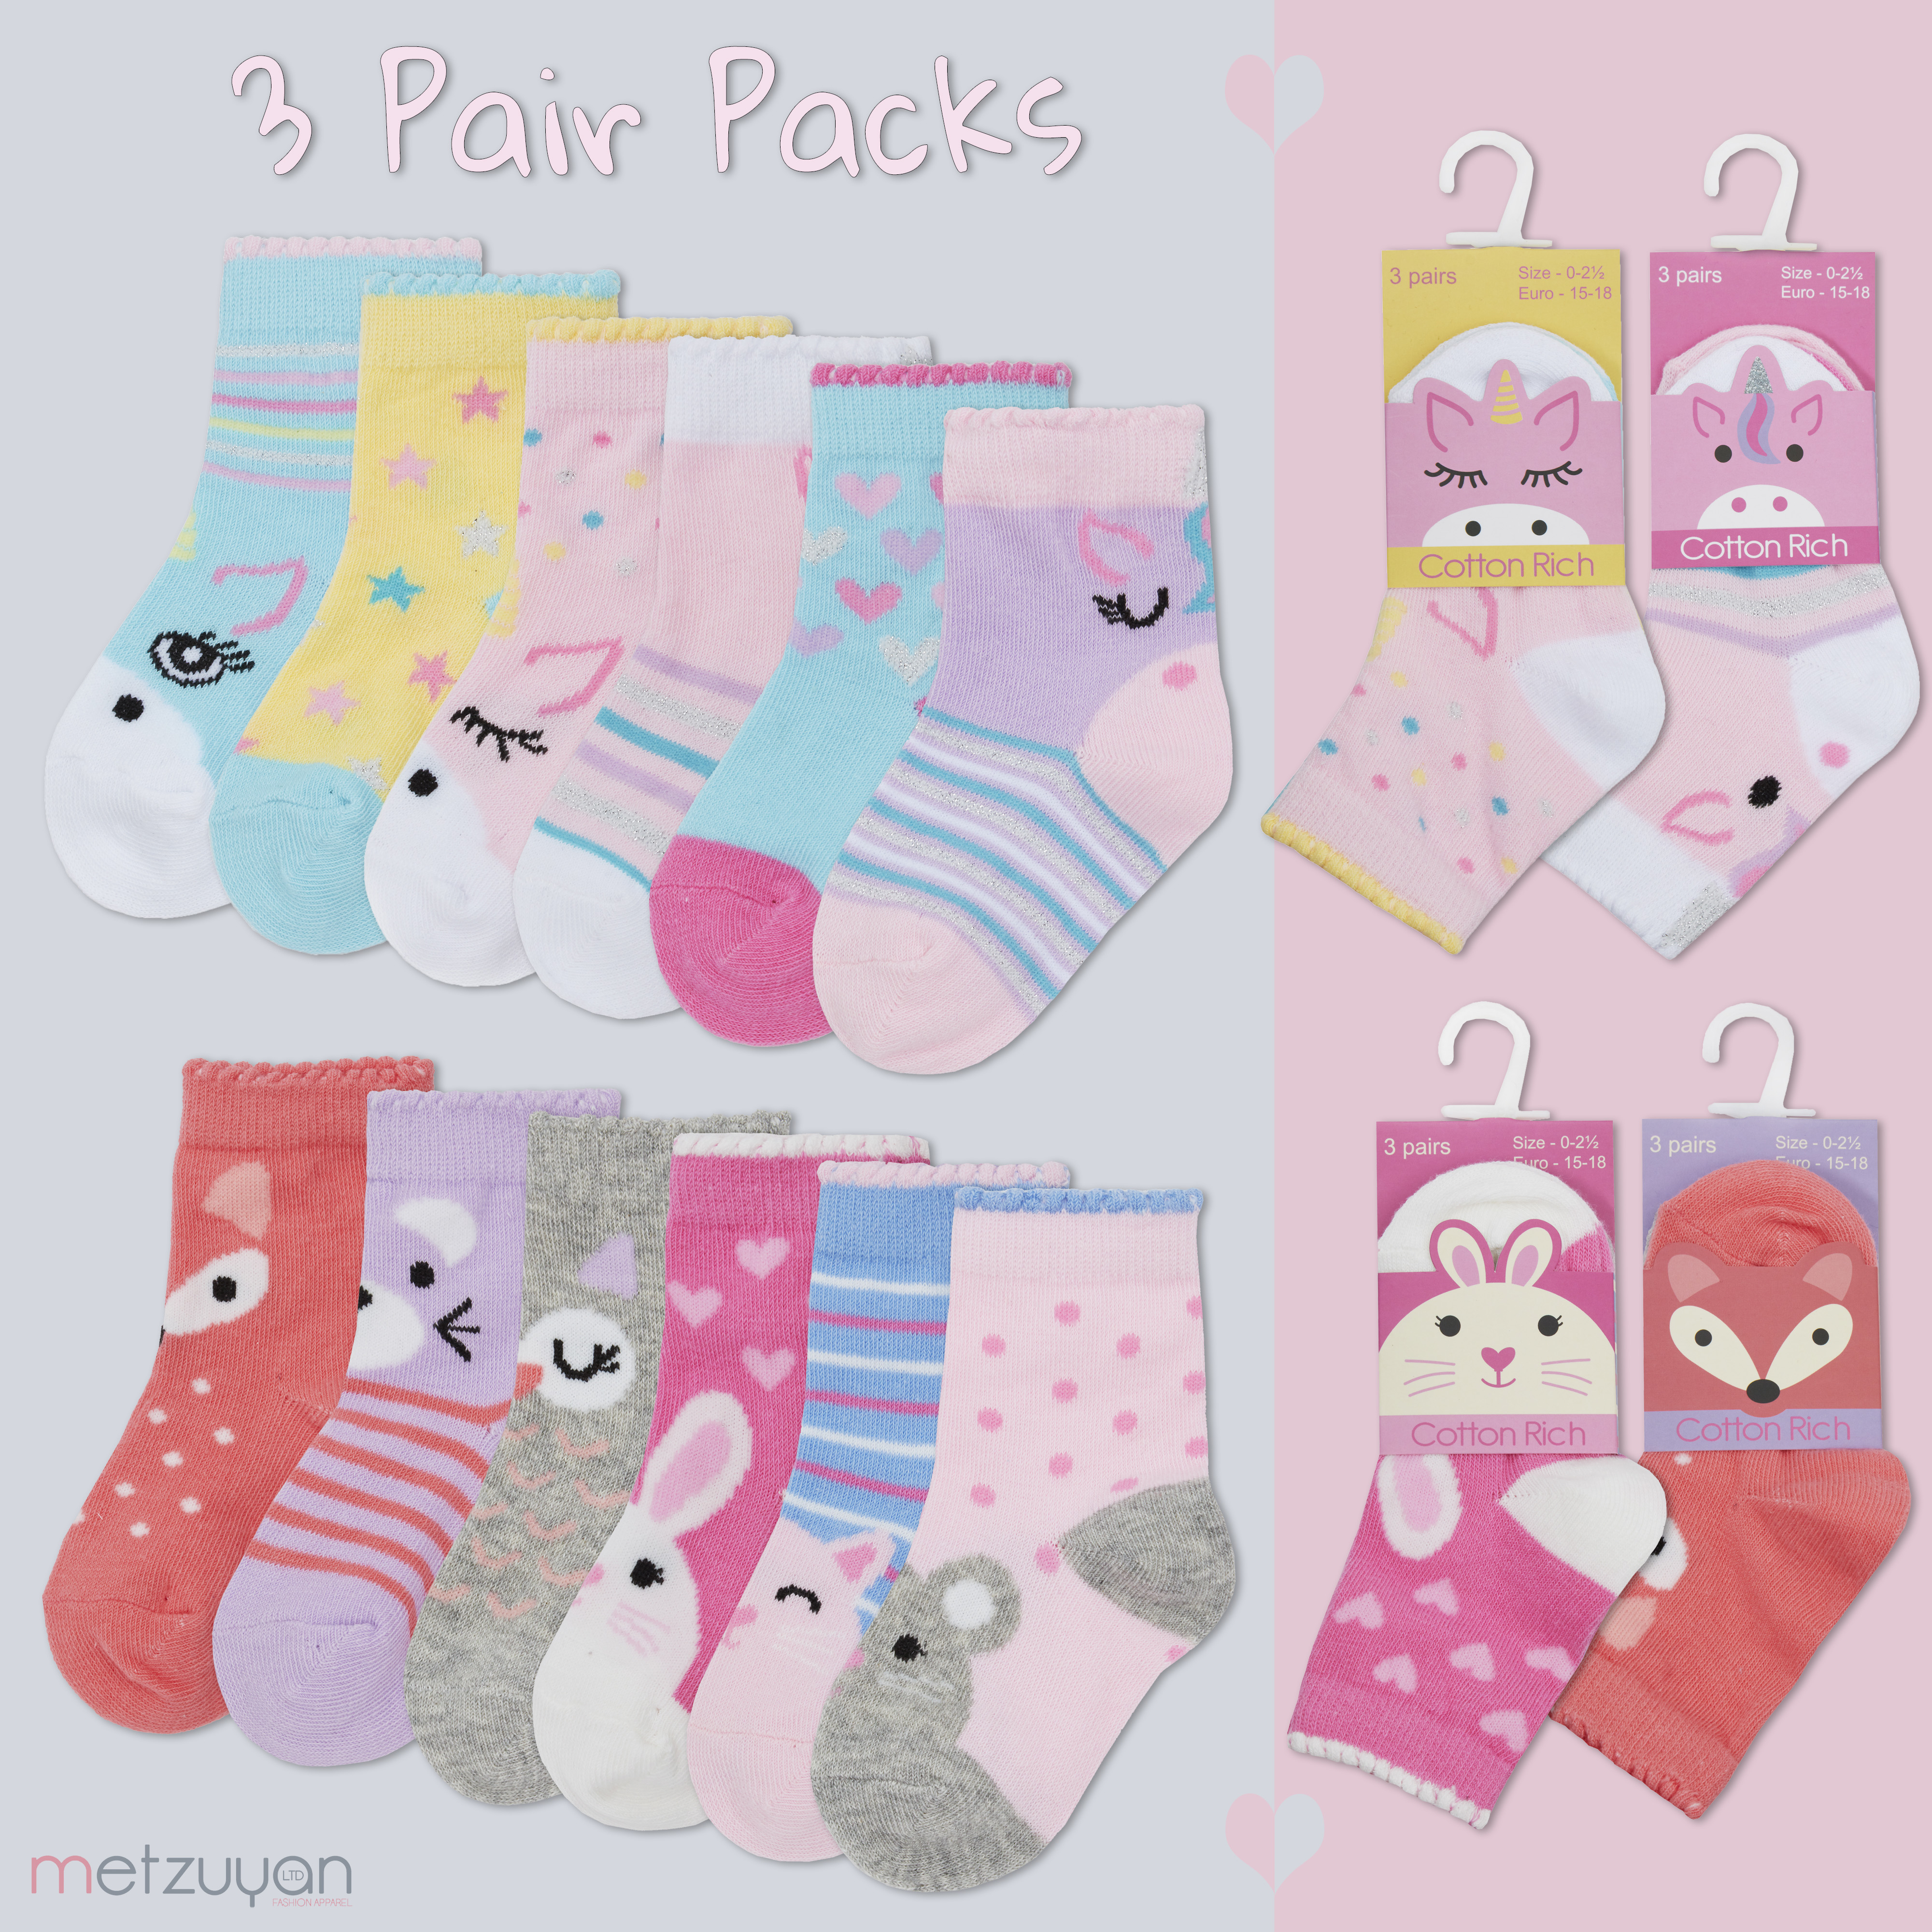 BABY NEWBORN COTTON RICH 3 PACK SOCKS